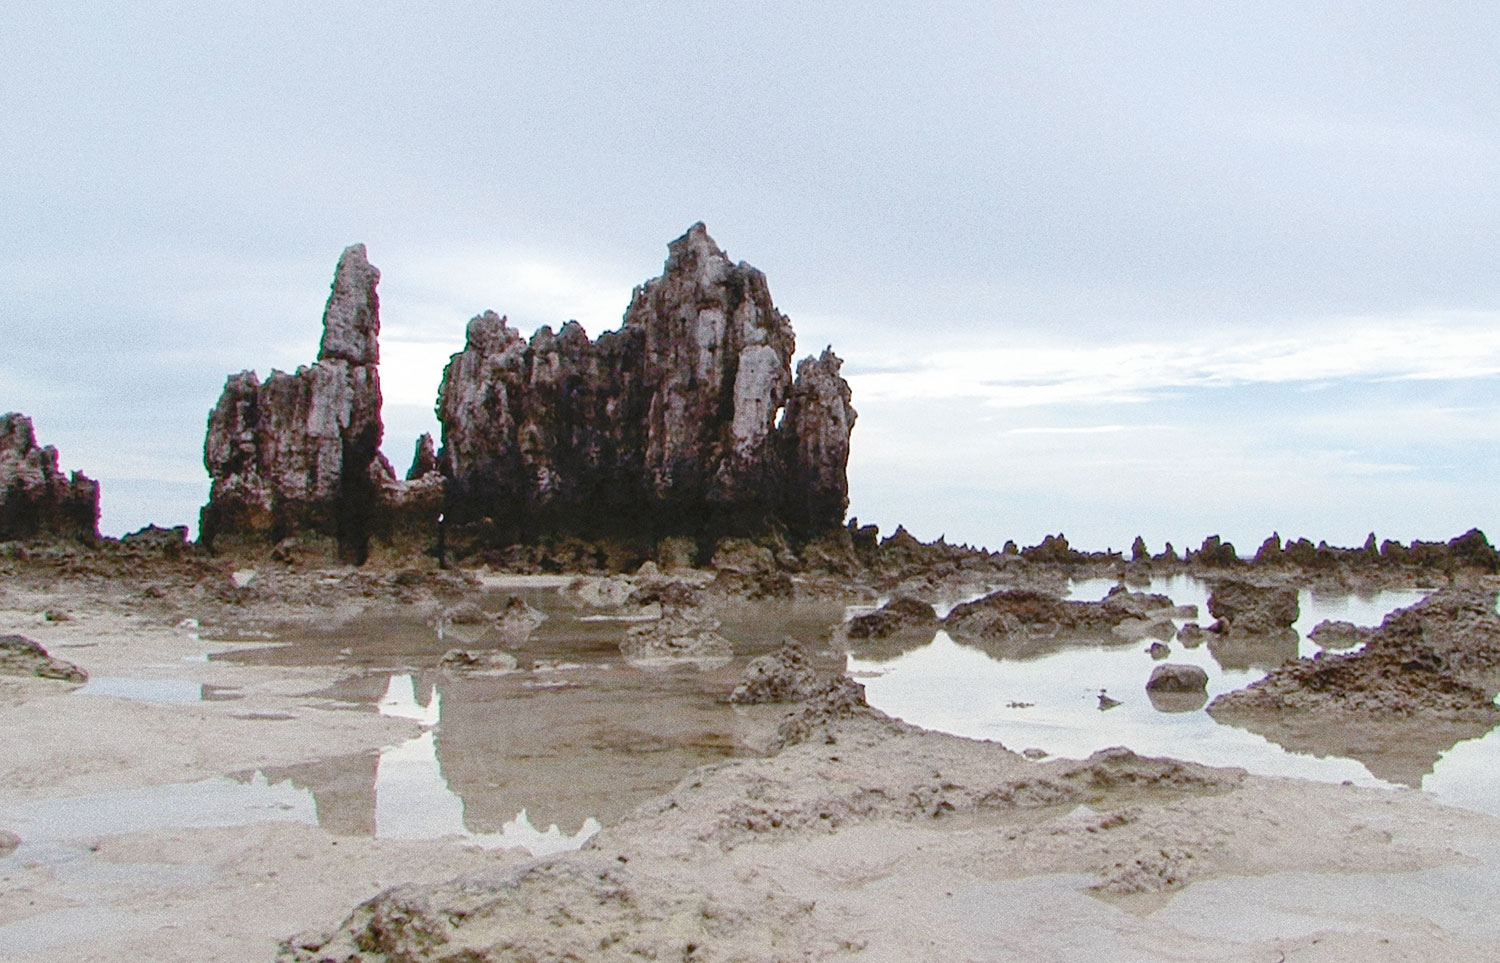 Nicholas Mangan, Nauru—Notes from a Cretaceous World, 2010, HD video, colour, sound, 14:50.